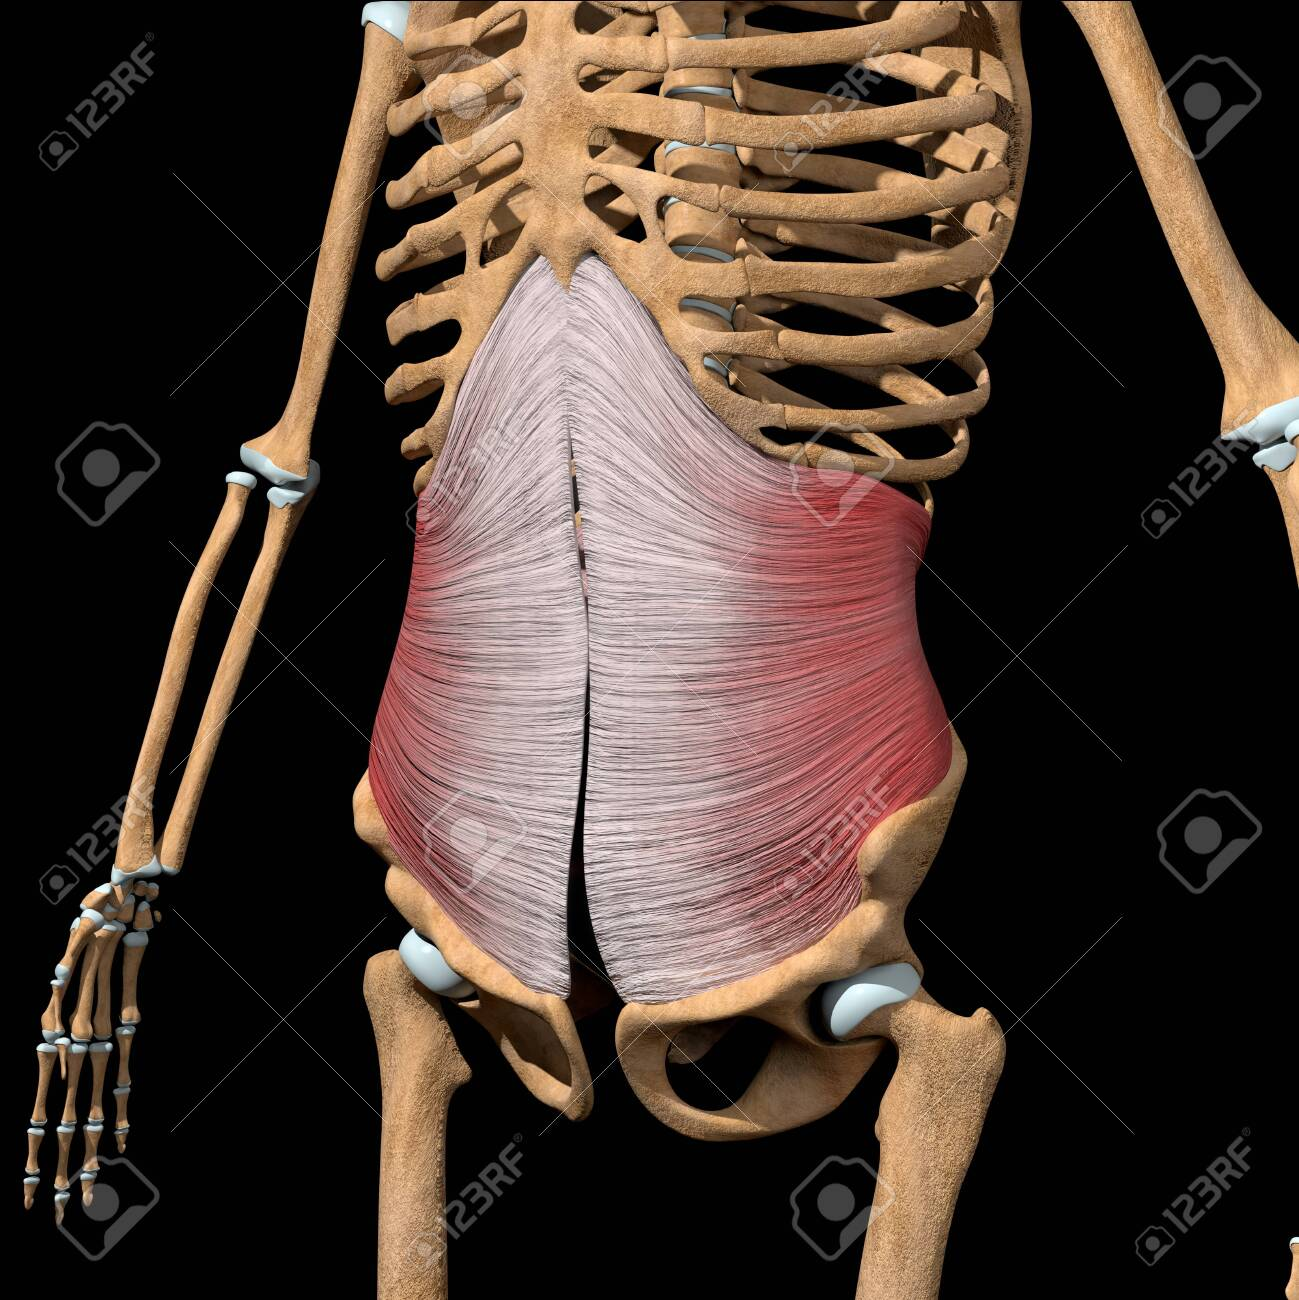 This 3d illustration shows the transverse abdominal muscles on skeleton - 141734520